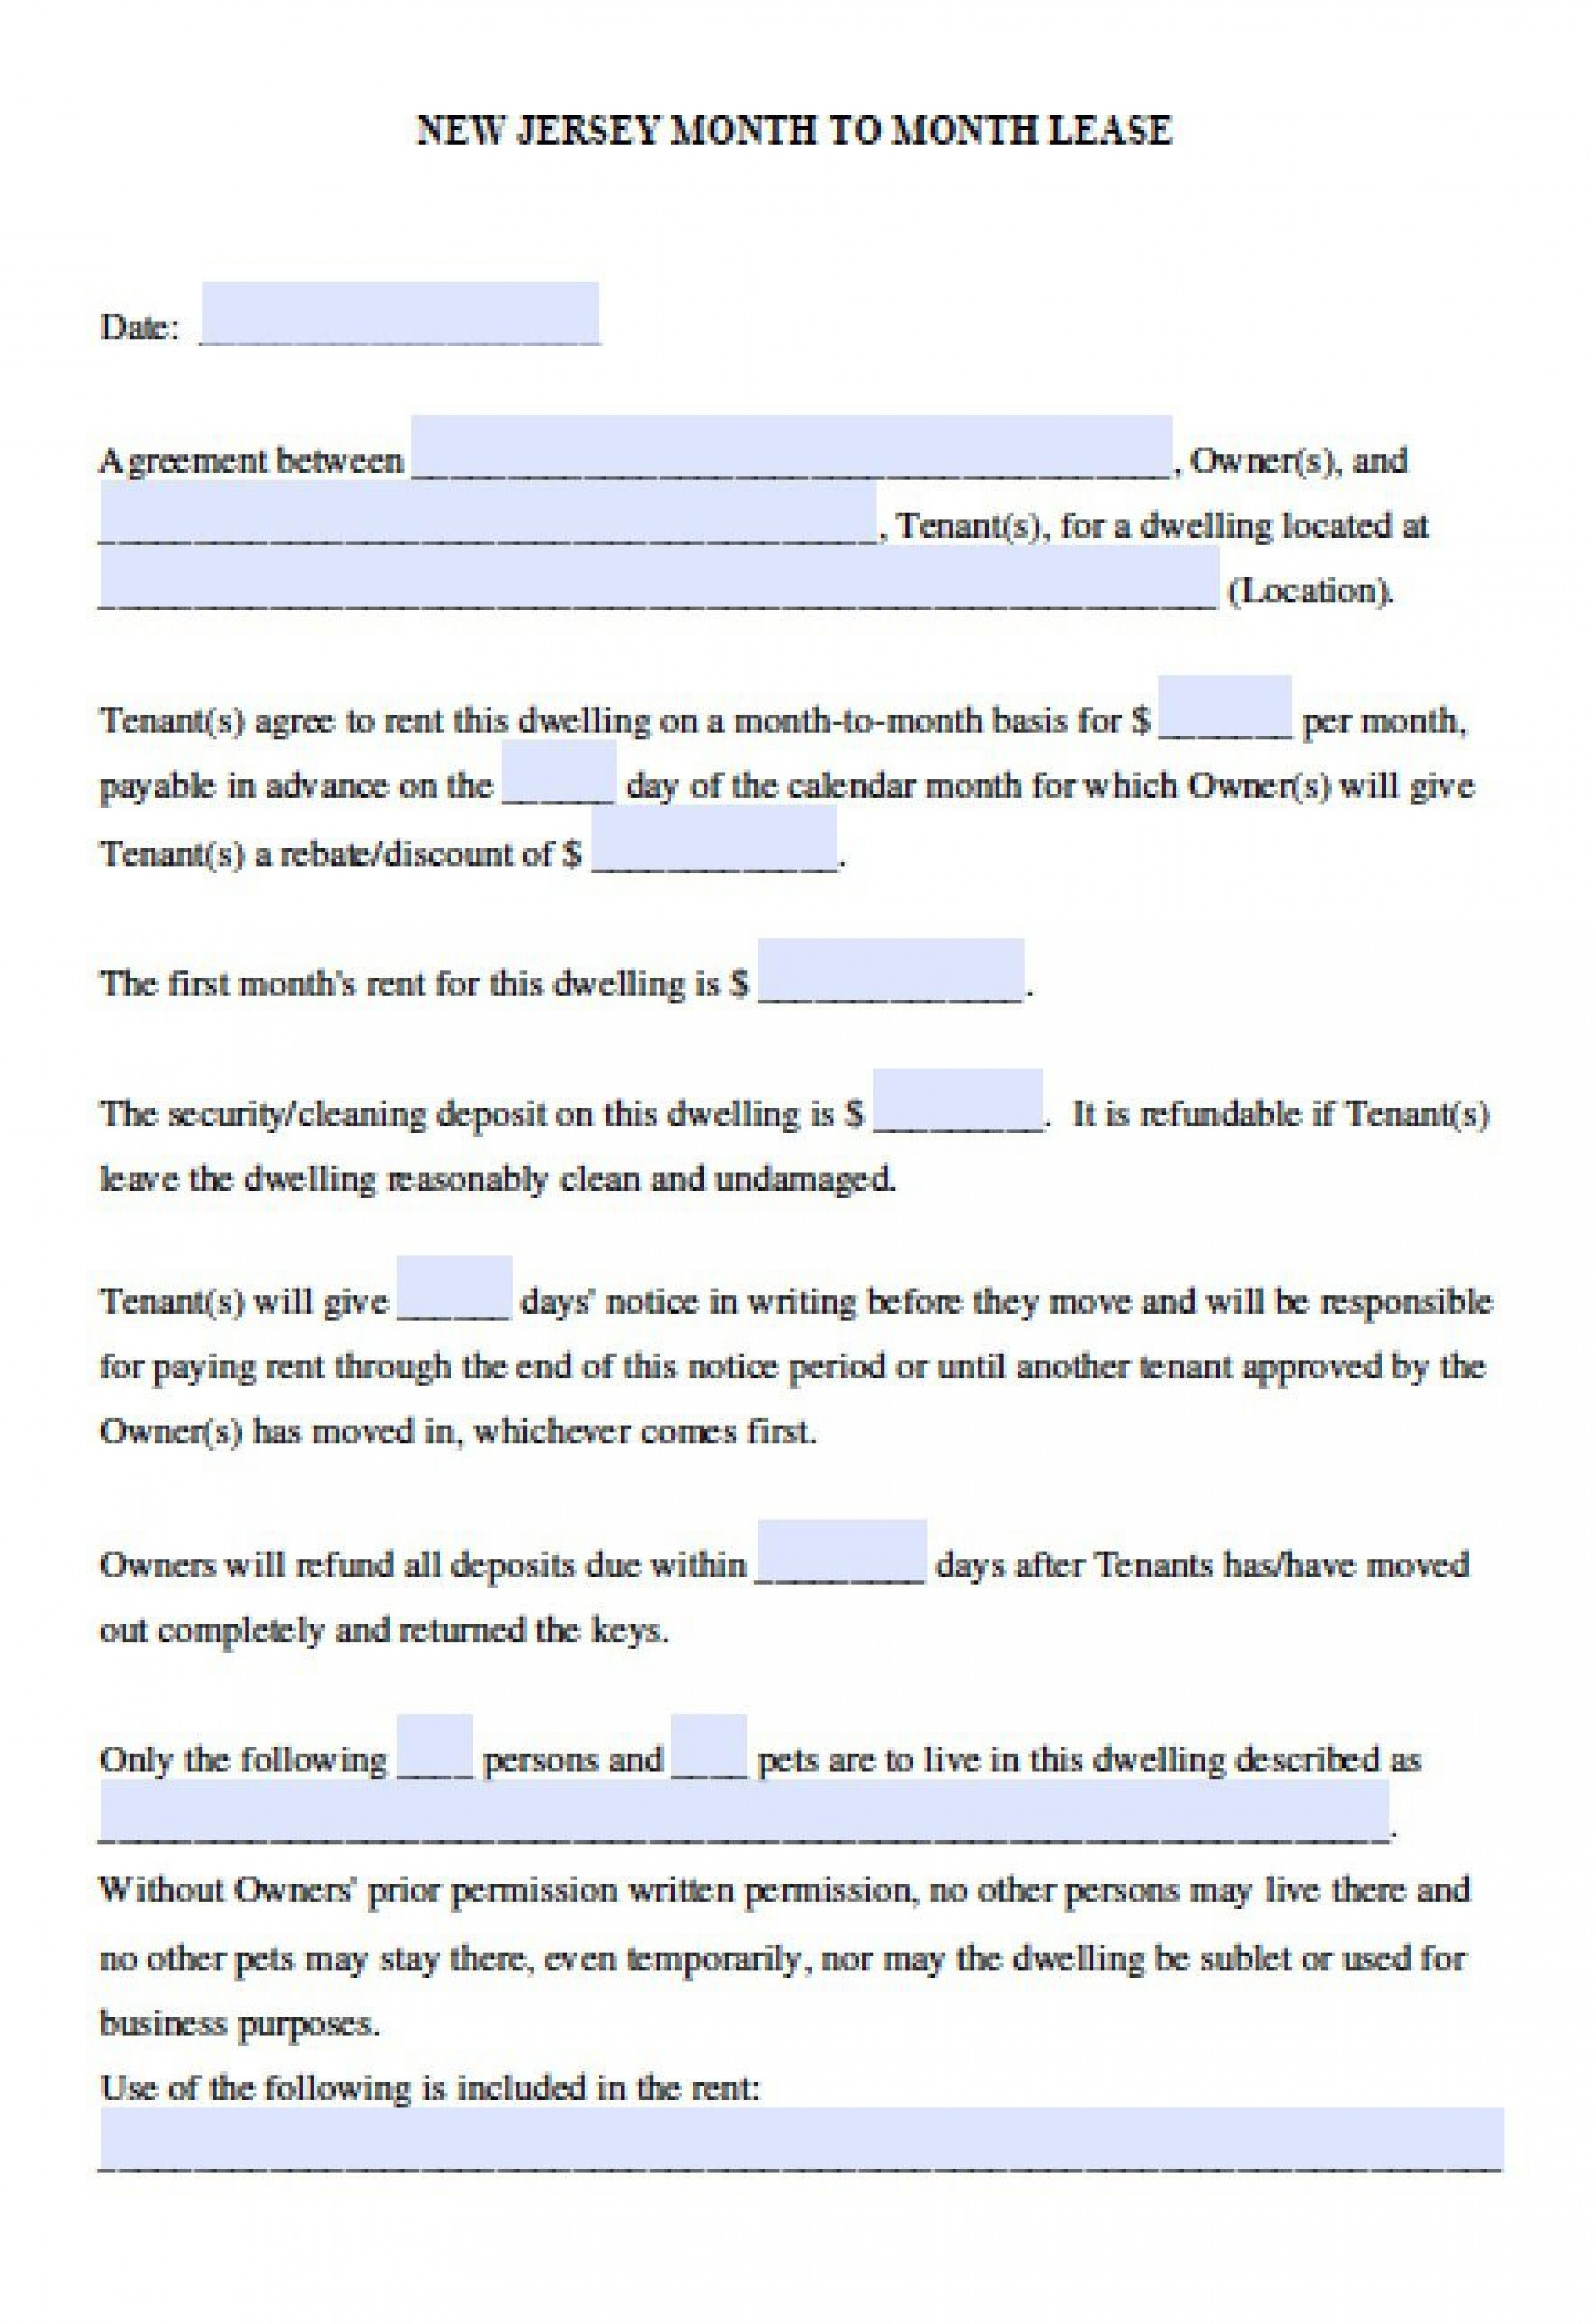 006 Magnificent Generic Rental Lease Agreement Nj Inspiration  Sample1920